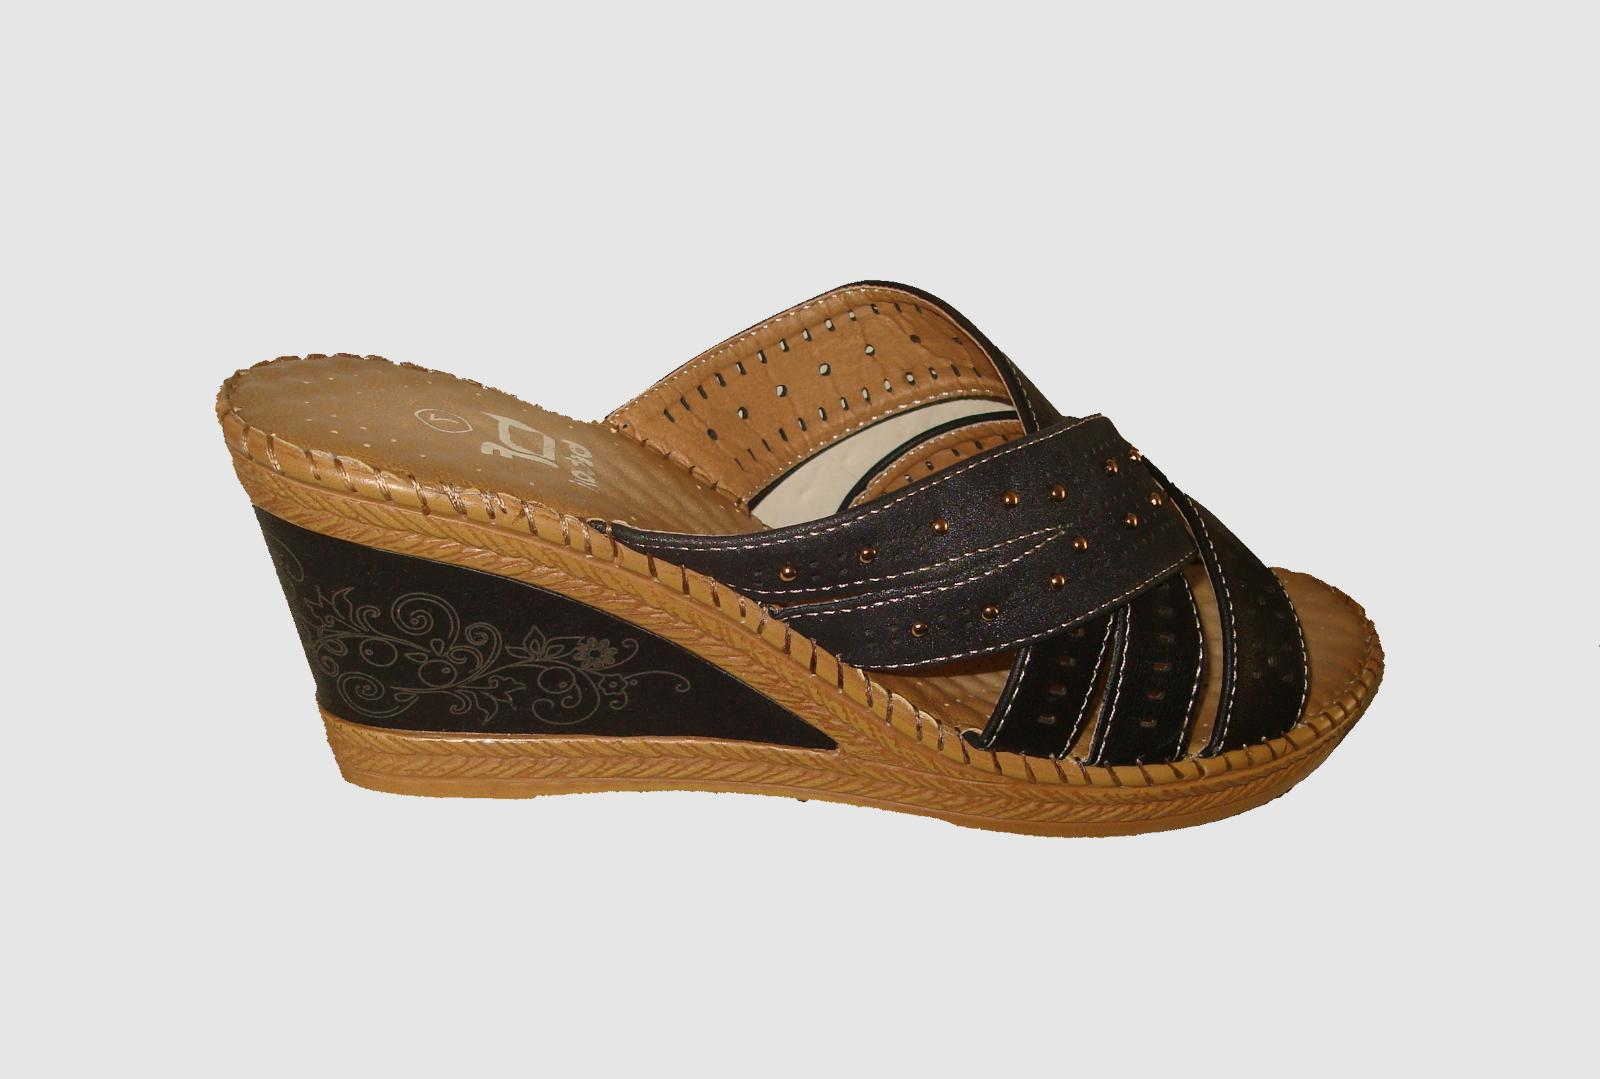 New Bentani  Sandal Black-Taupe Color Beautiful ON SALE NOW